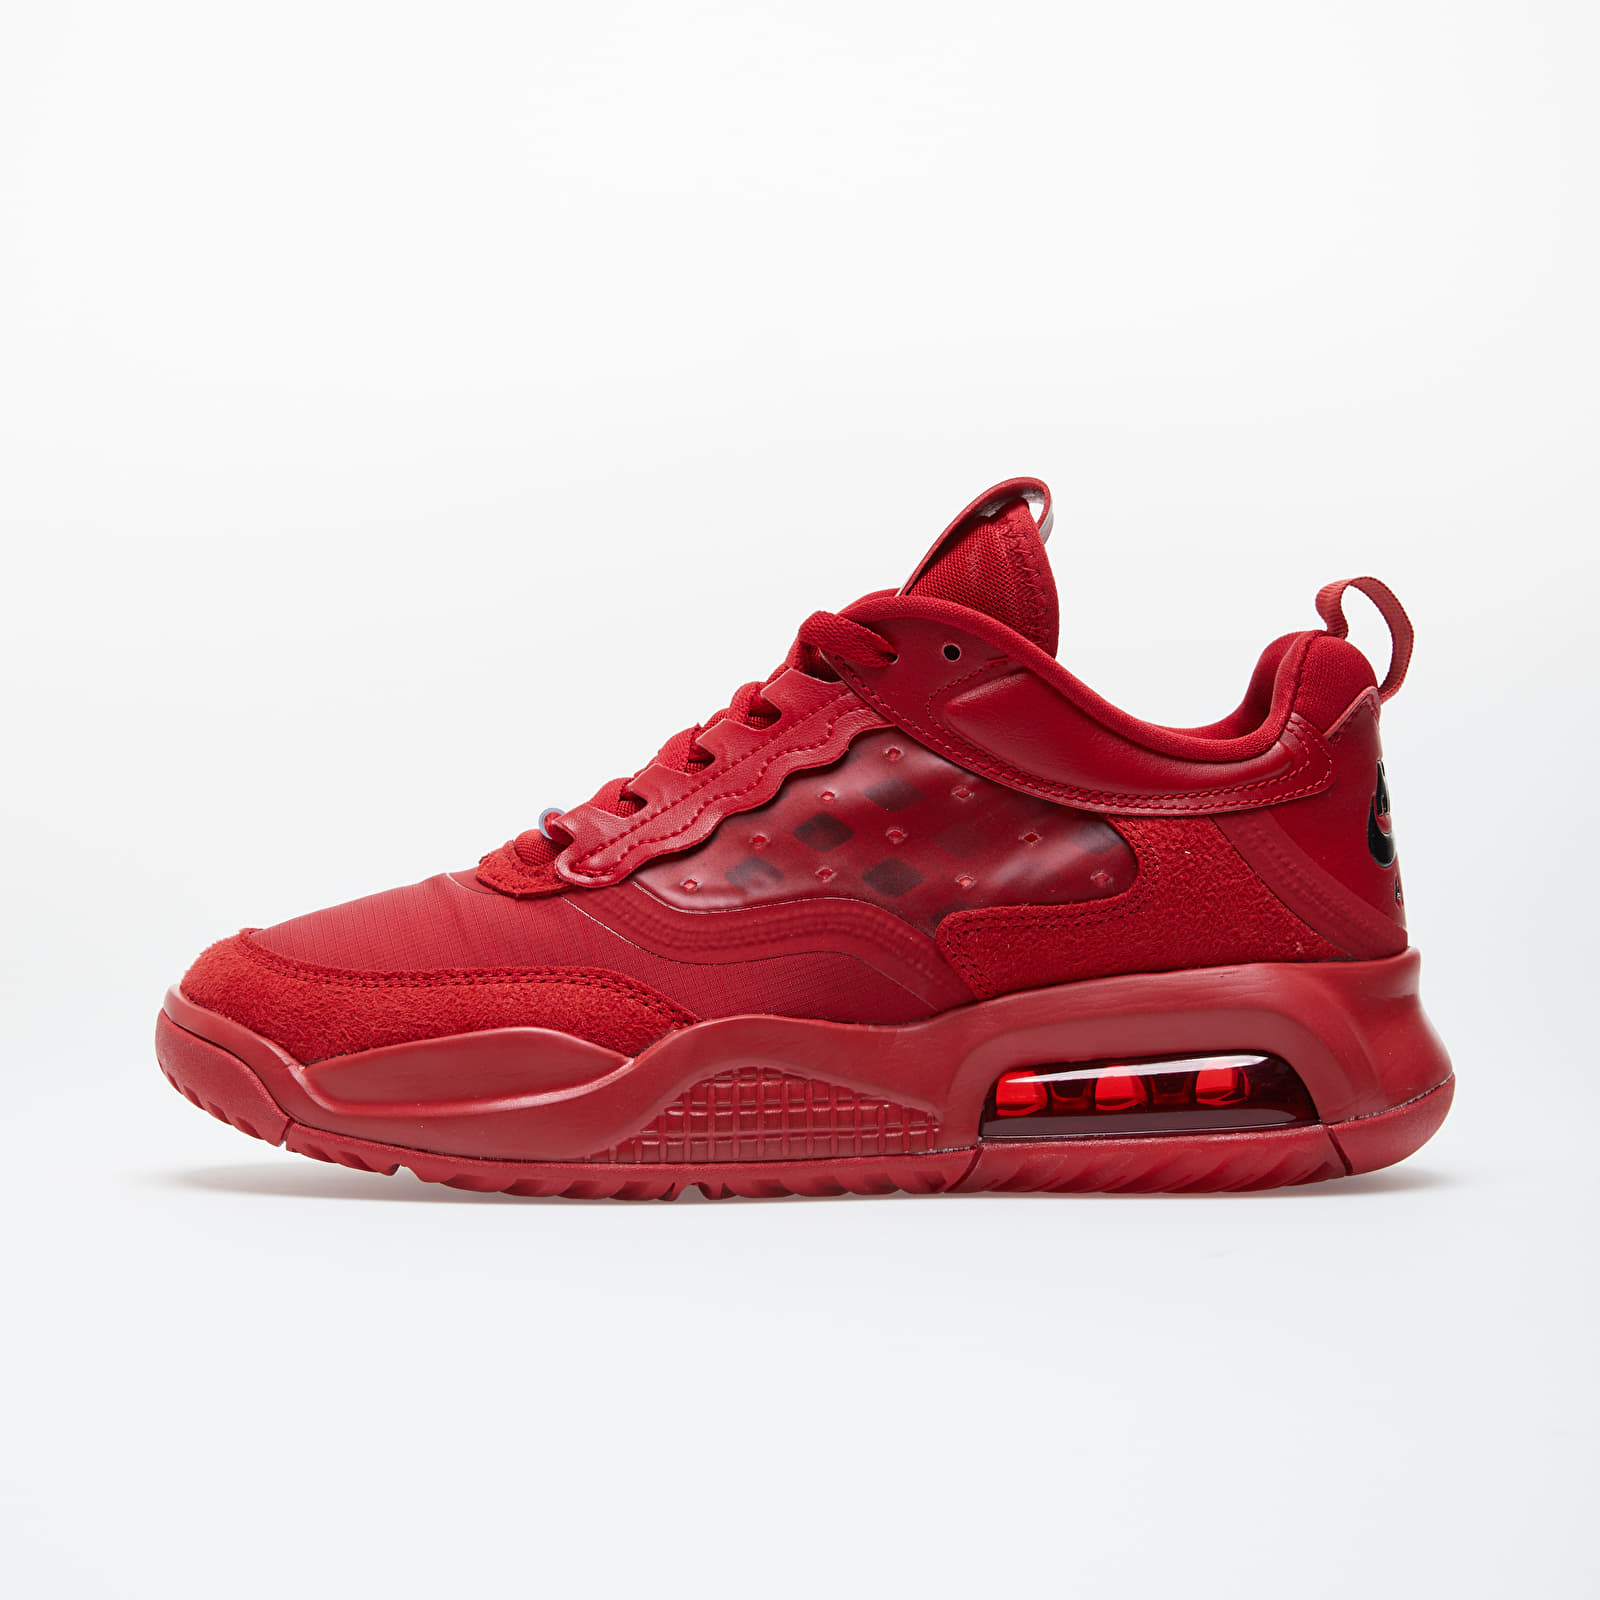 Chaussures et baskets homme Jordan Max 200 Gym Red/ Black